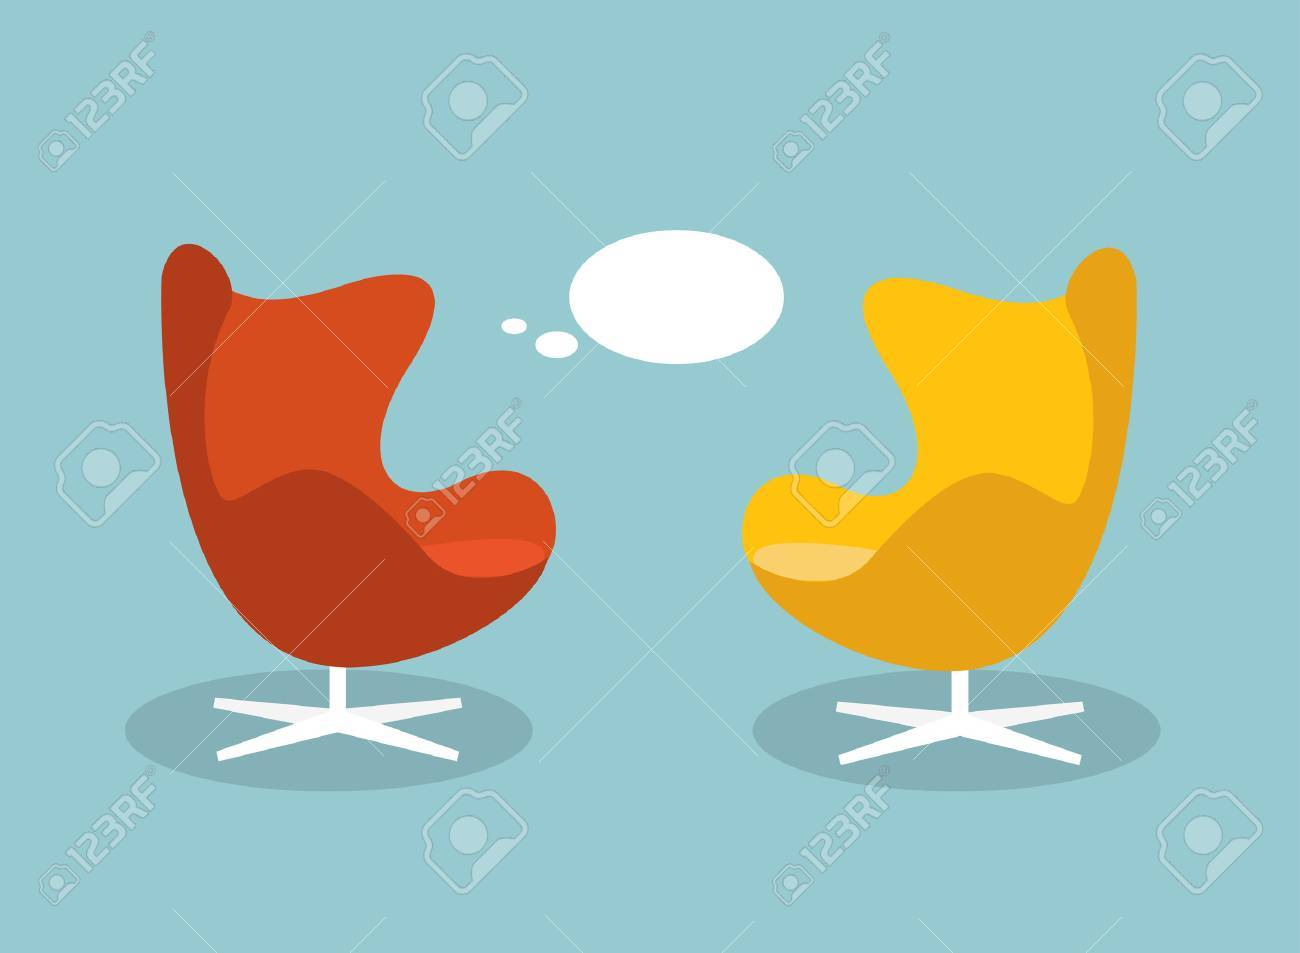 Vector illustration of a communication and discussion concept. Retro armchaichr with talk baloon. Flat design vector illustration. - 57443489